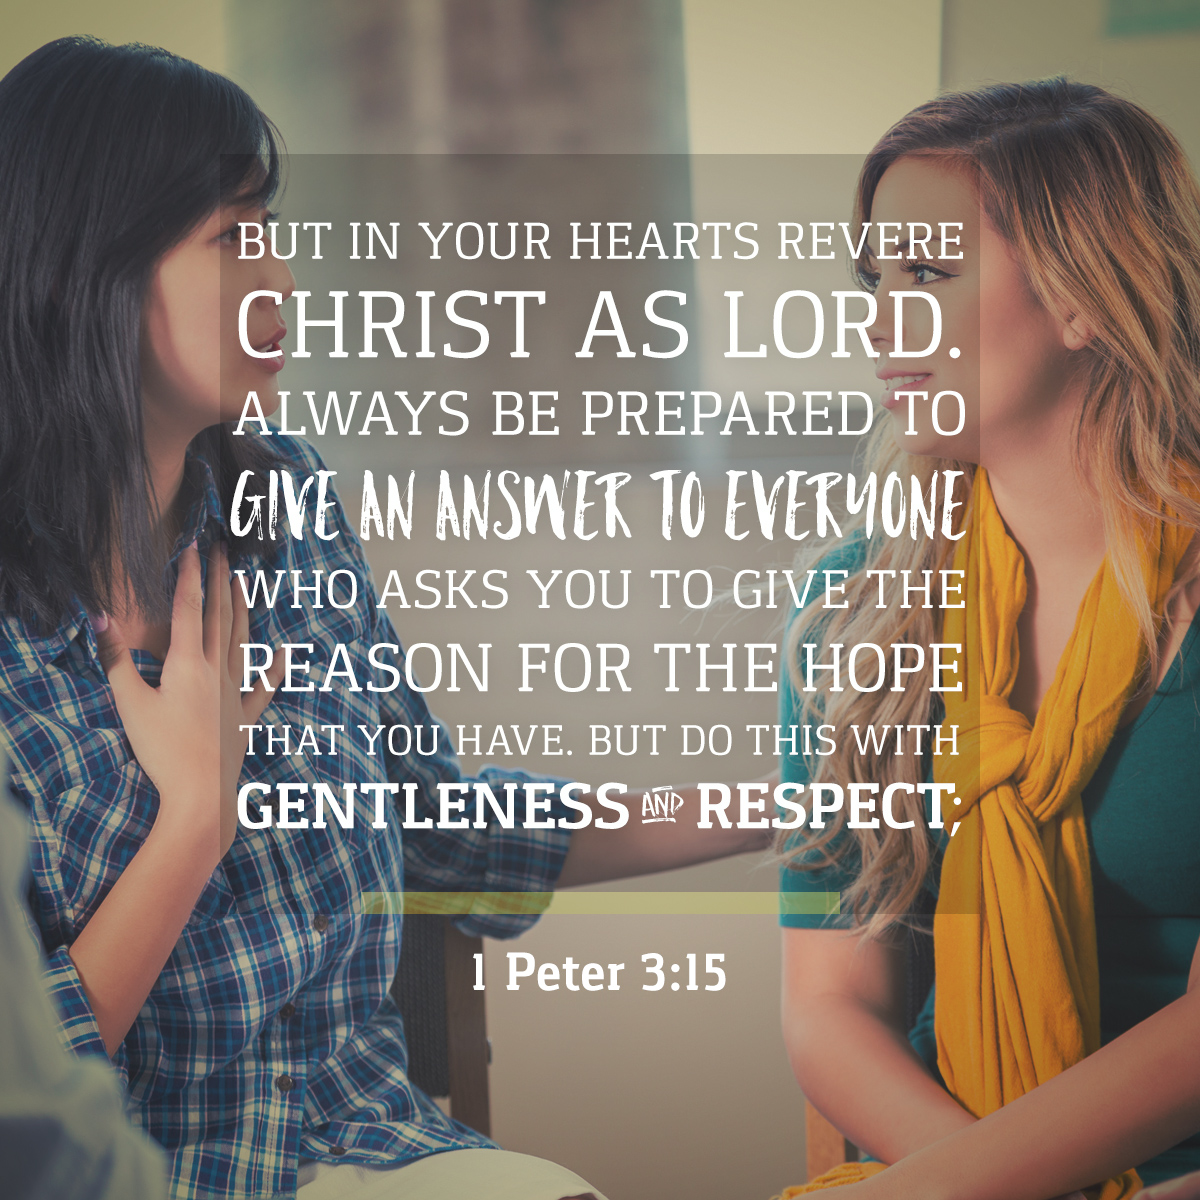 1 Peter 3:15 Daily Verse